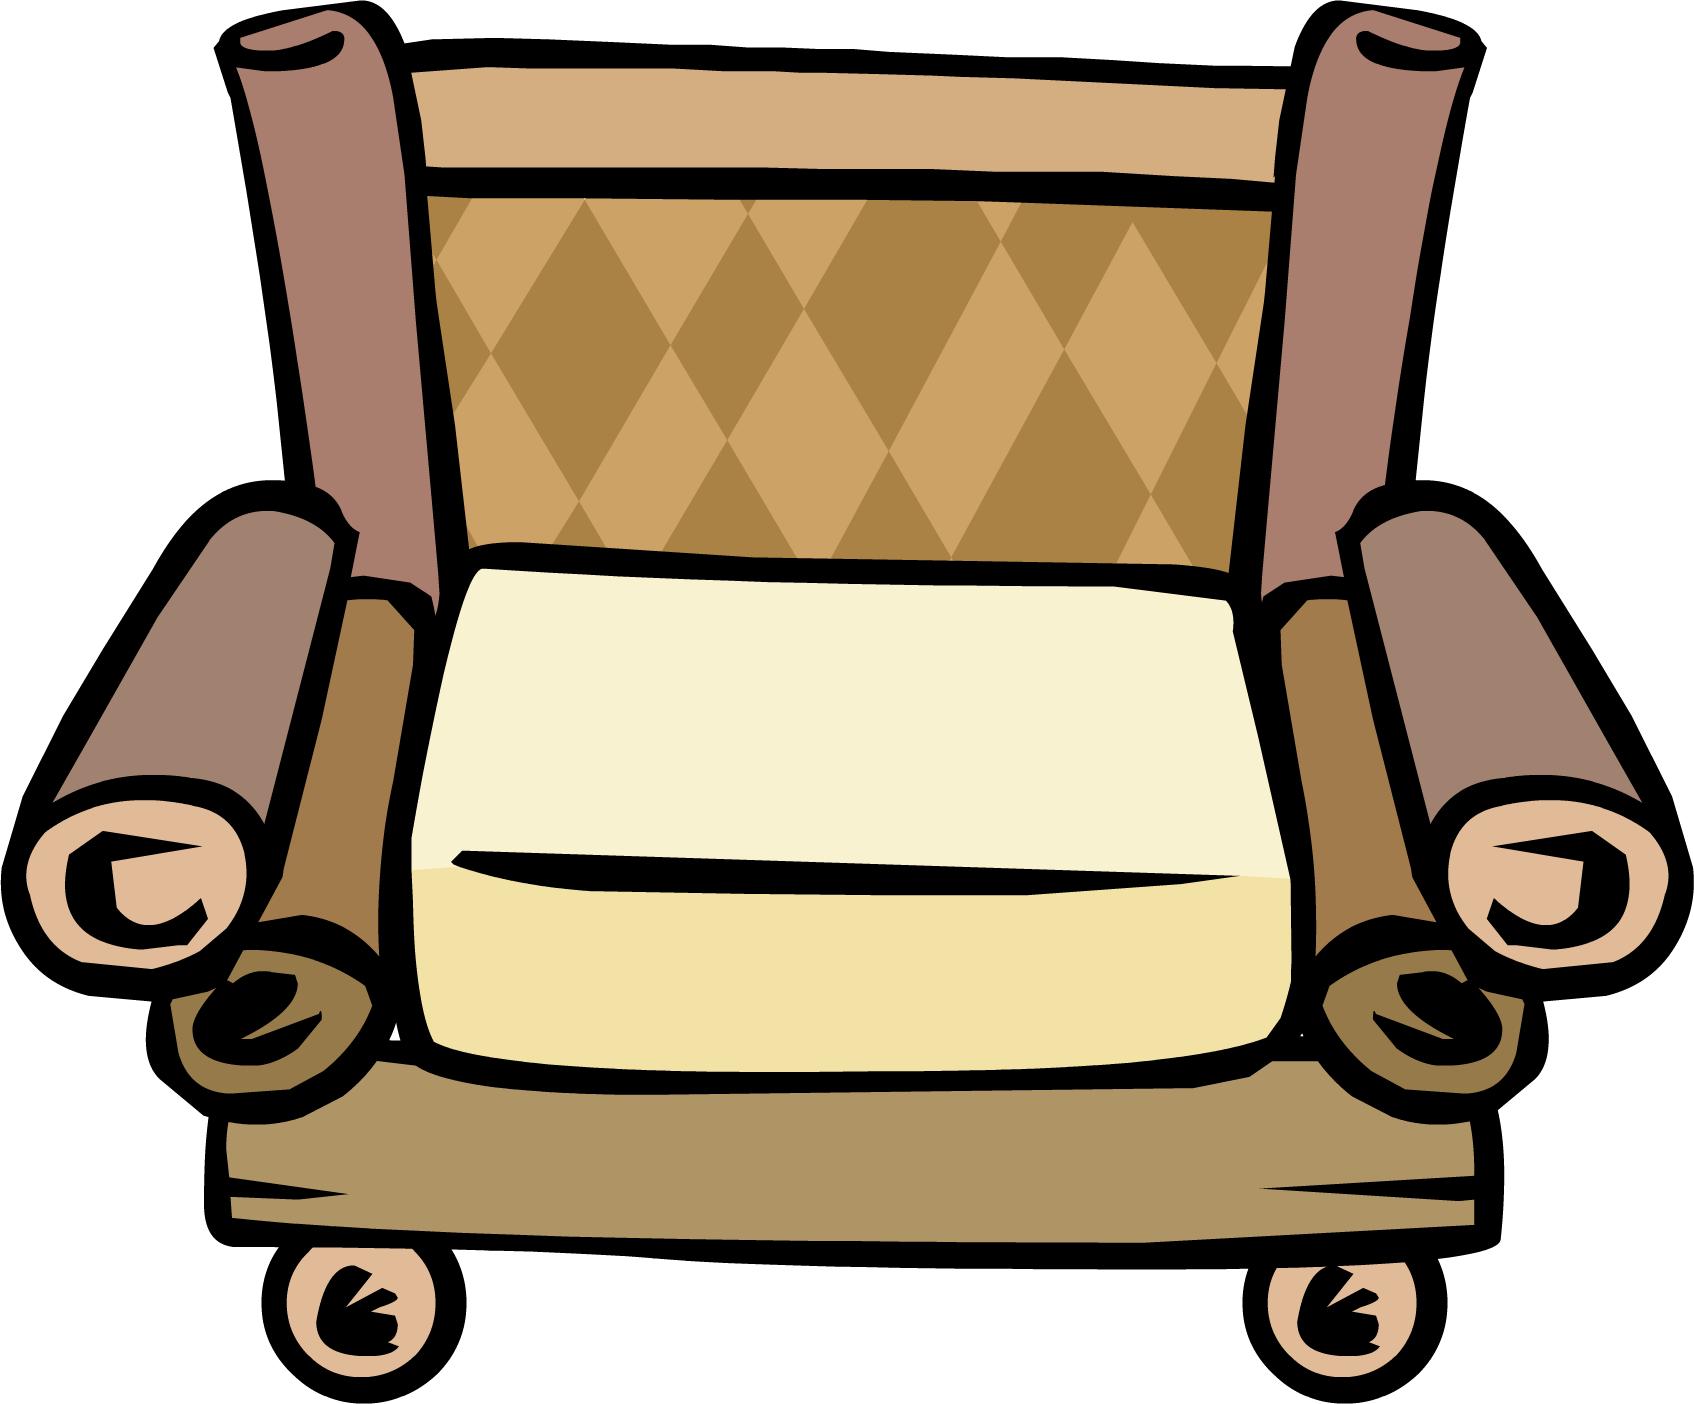 Bamboo Chair Club Penguin Wiki